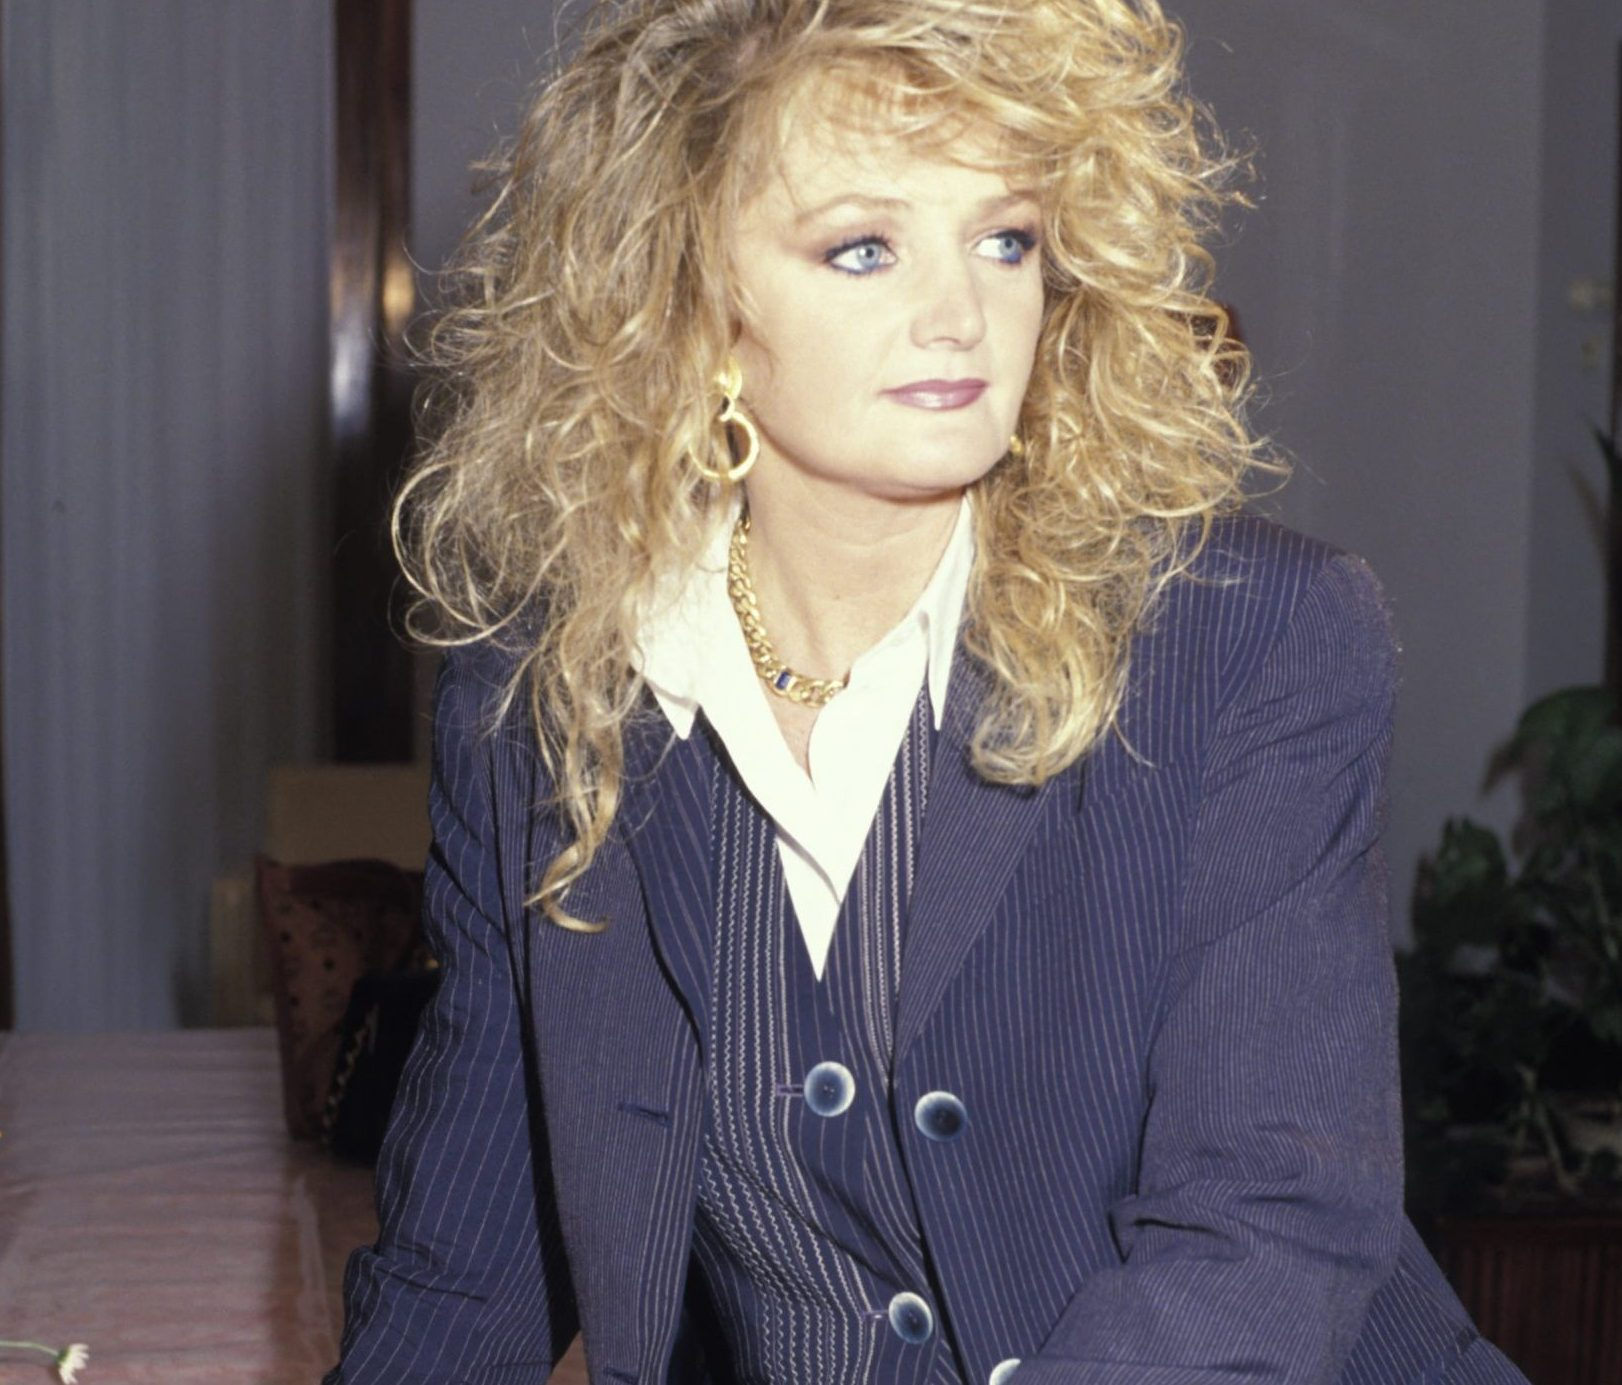 Bonnie Tyler in Moscow 6 May 1997 scaled e1623410353457 80s Fashion Trends We Should Leave Behind For Good